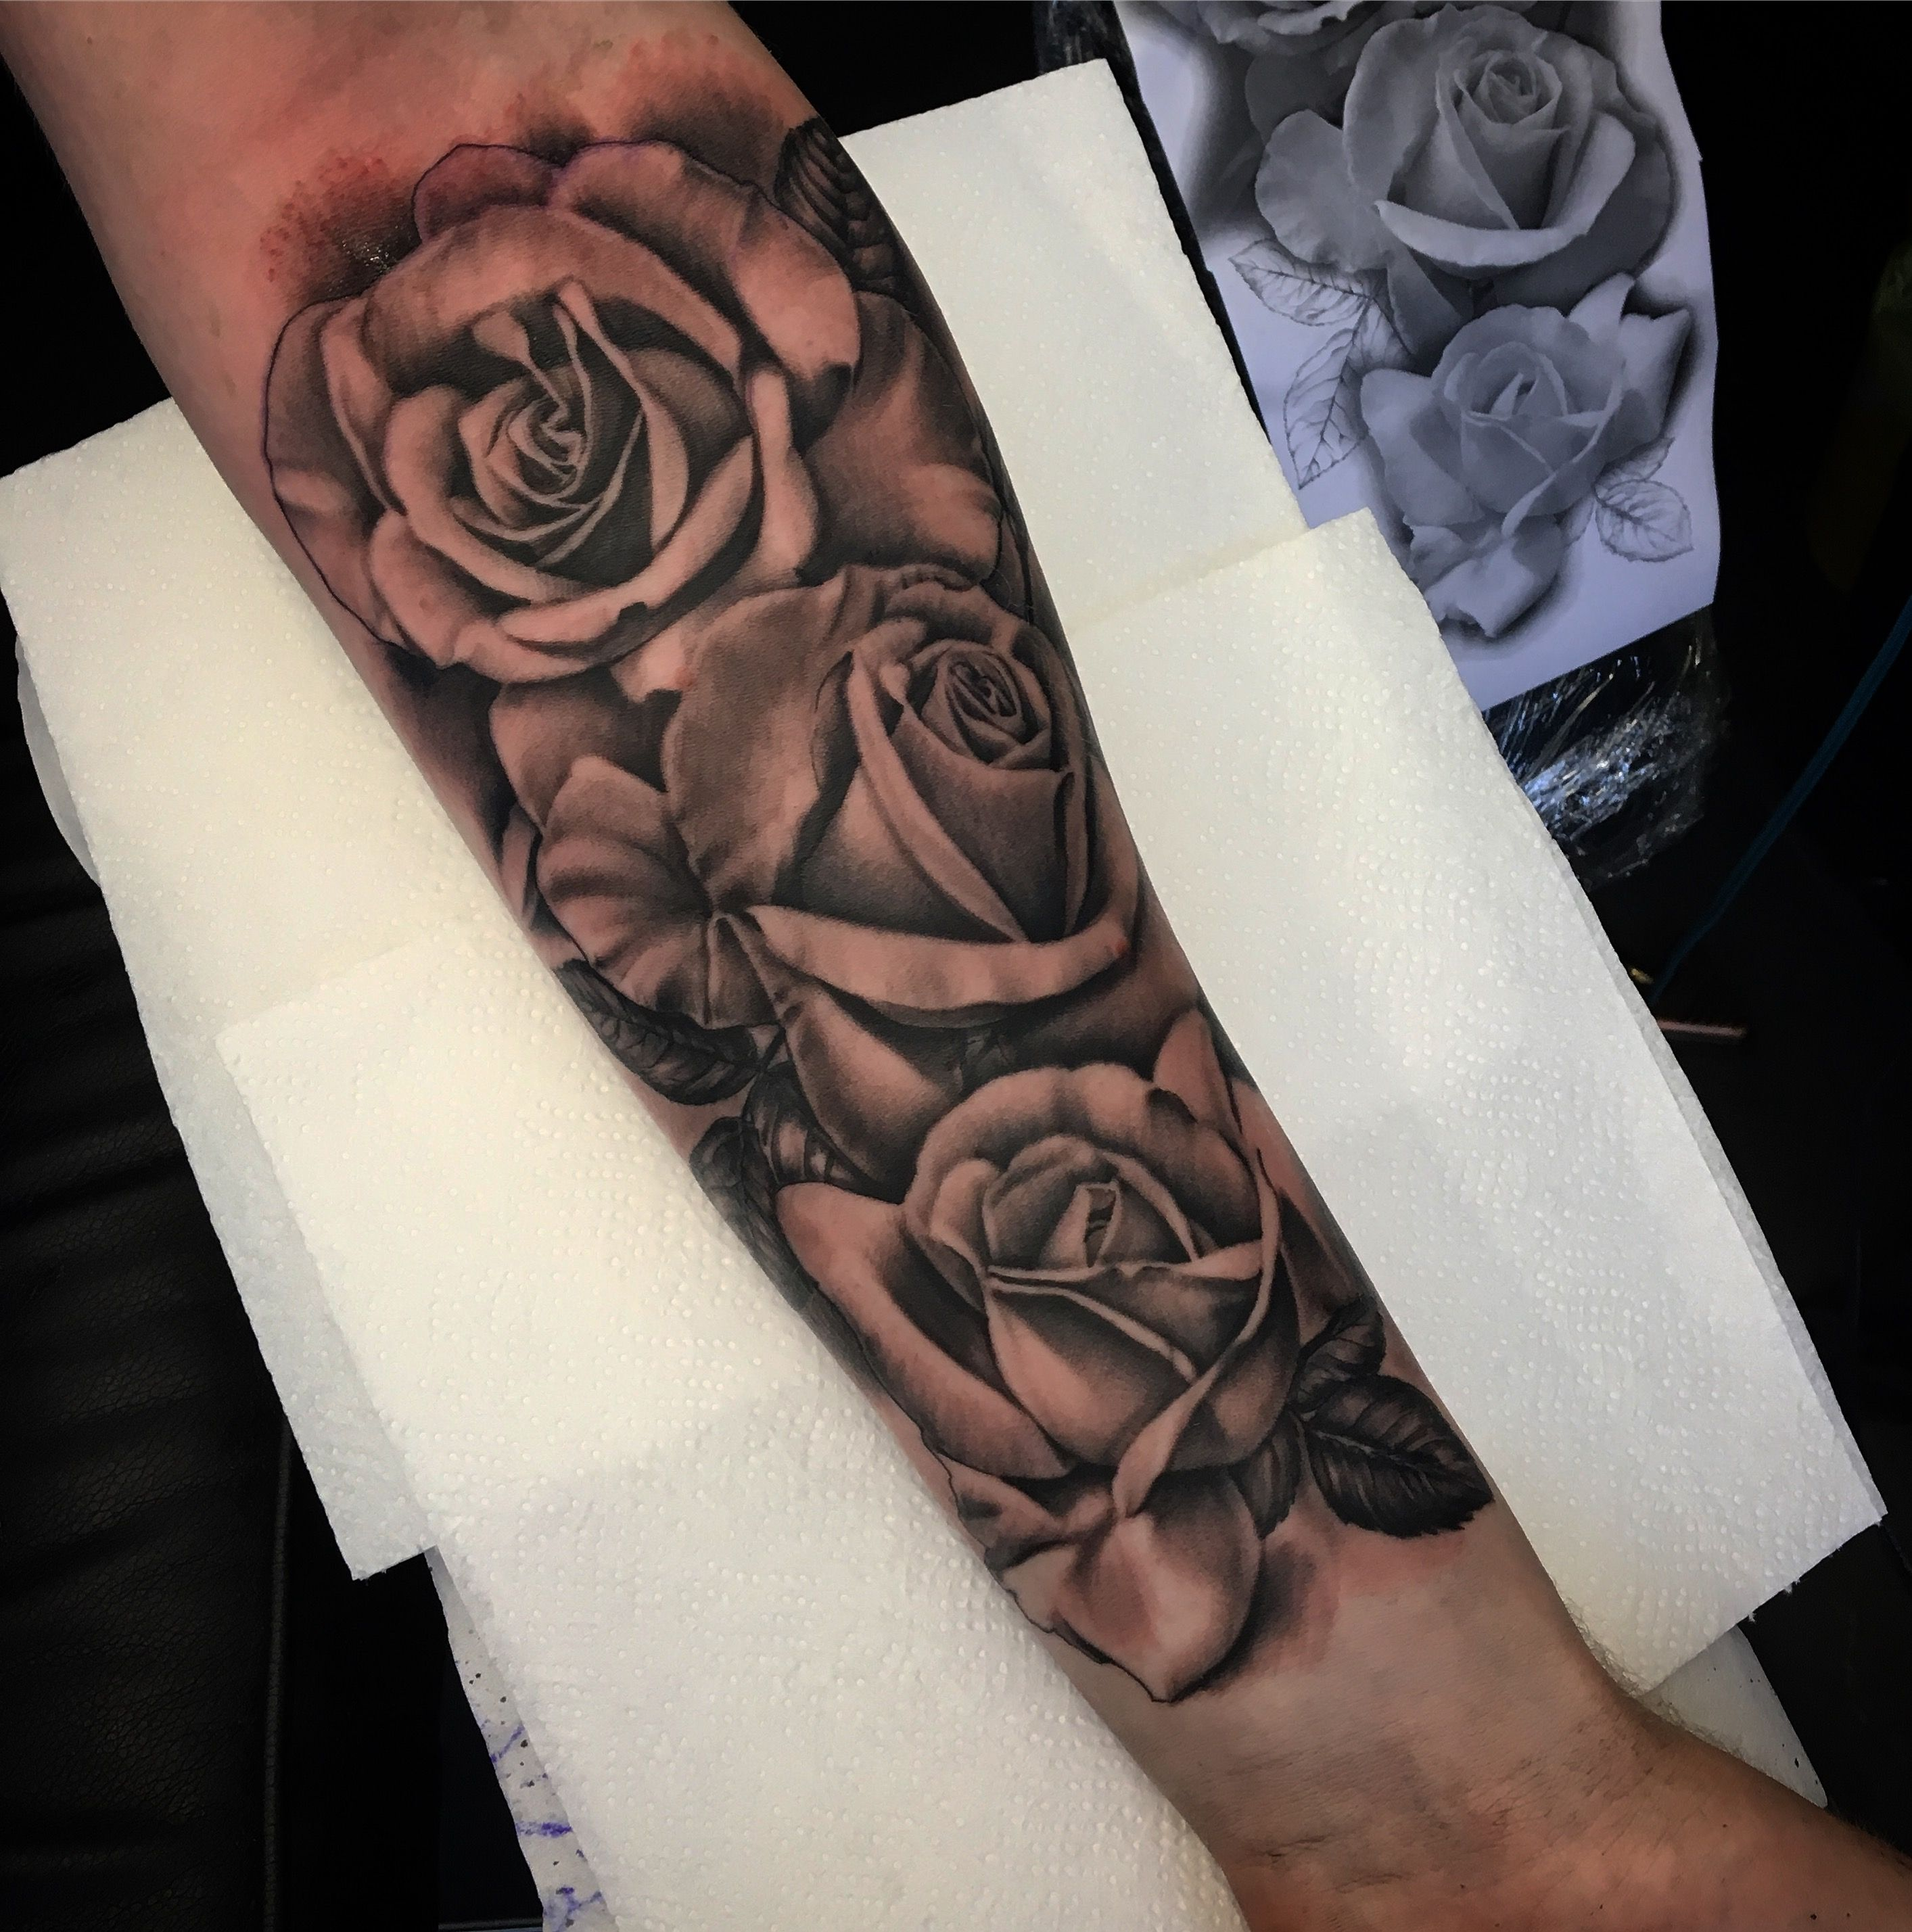 Rose tattoo Rose tattoos for men, Tattoos for guys, Half